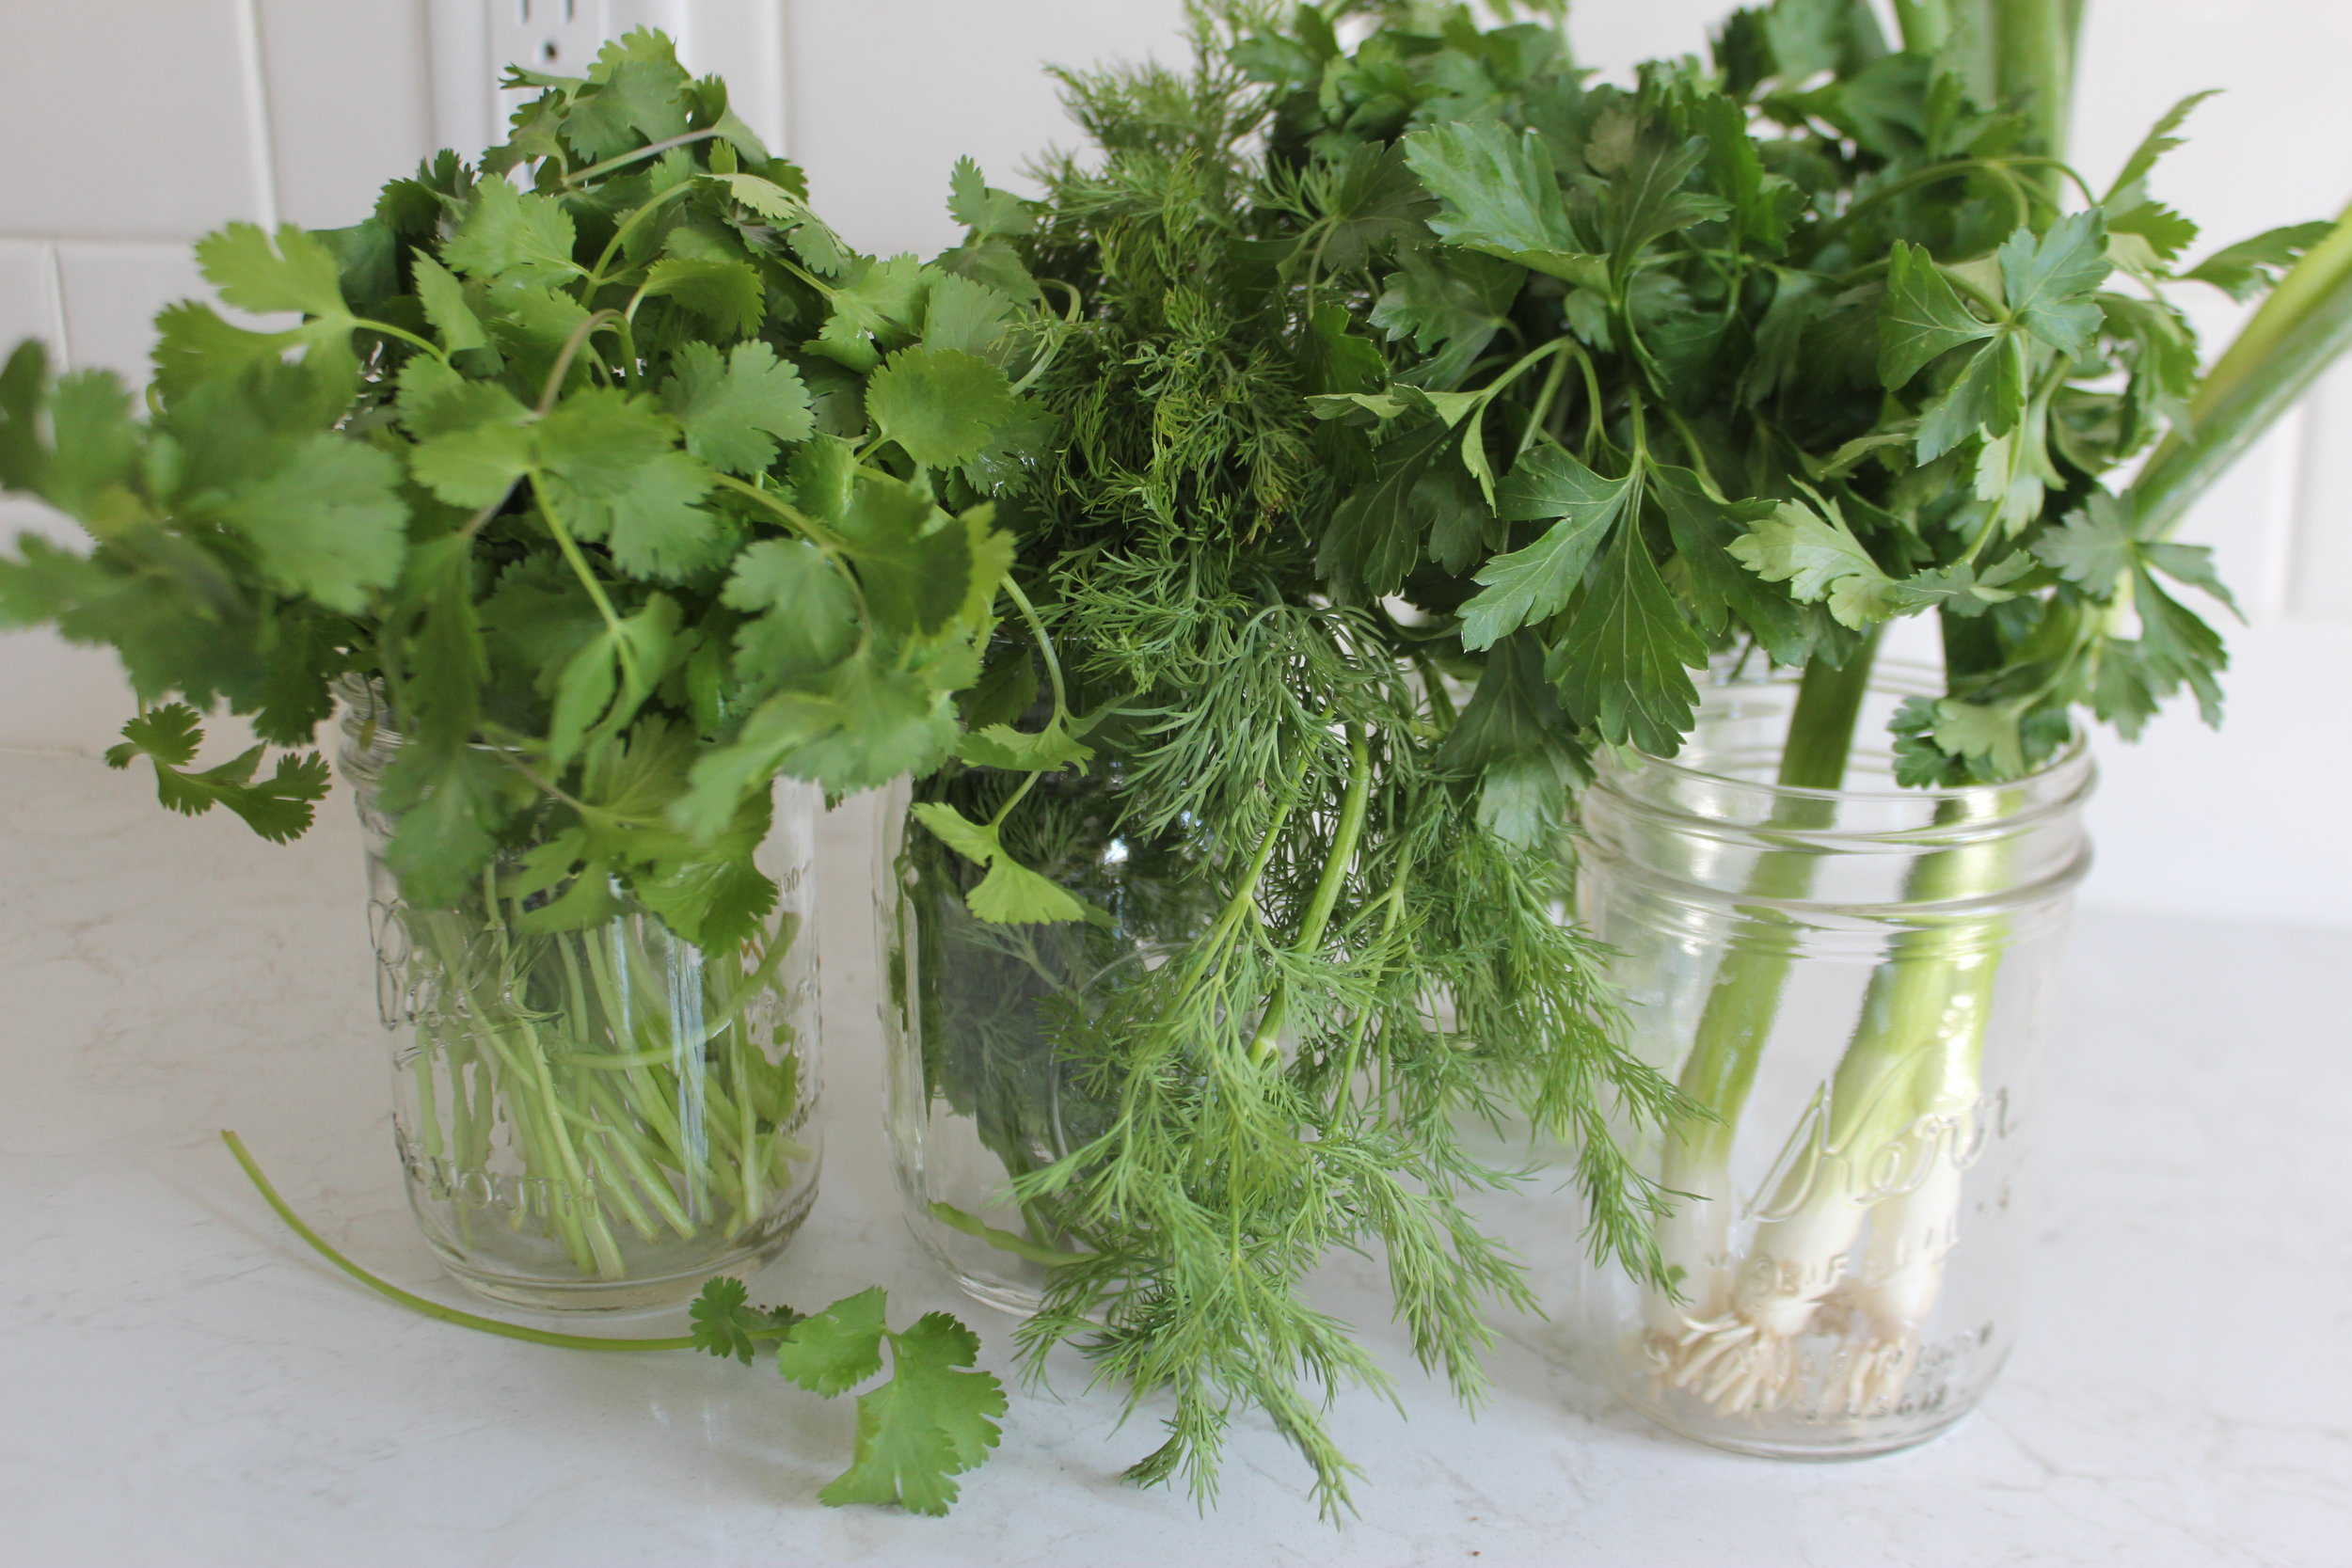 Cilantro, Parsley, Dill, Green Onion